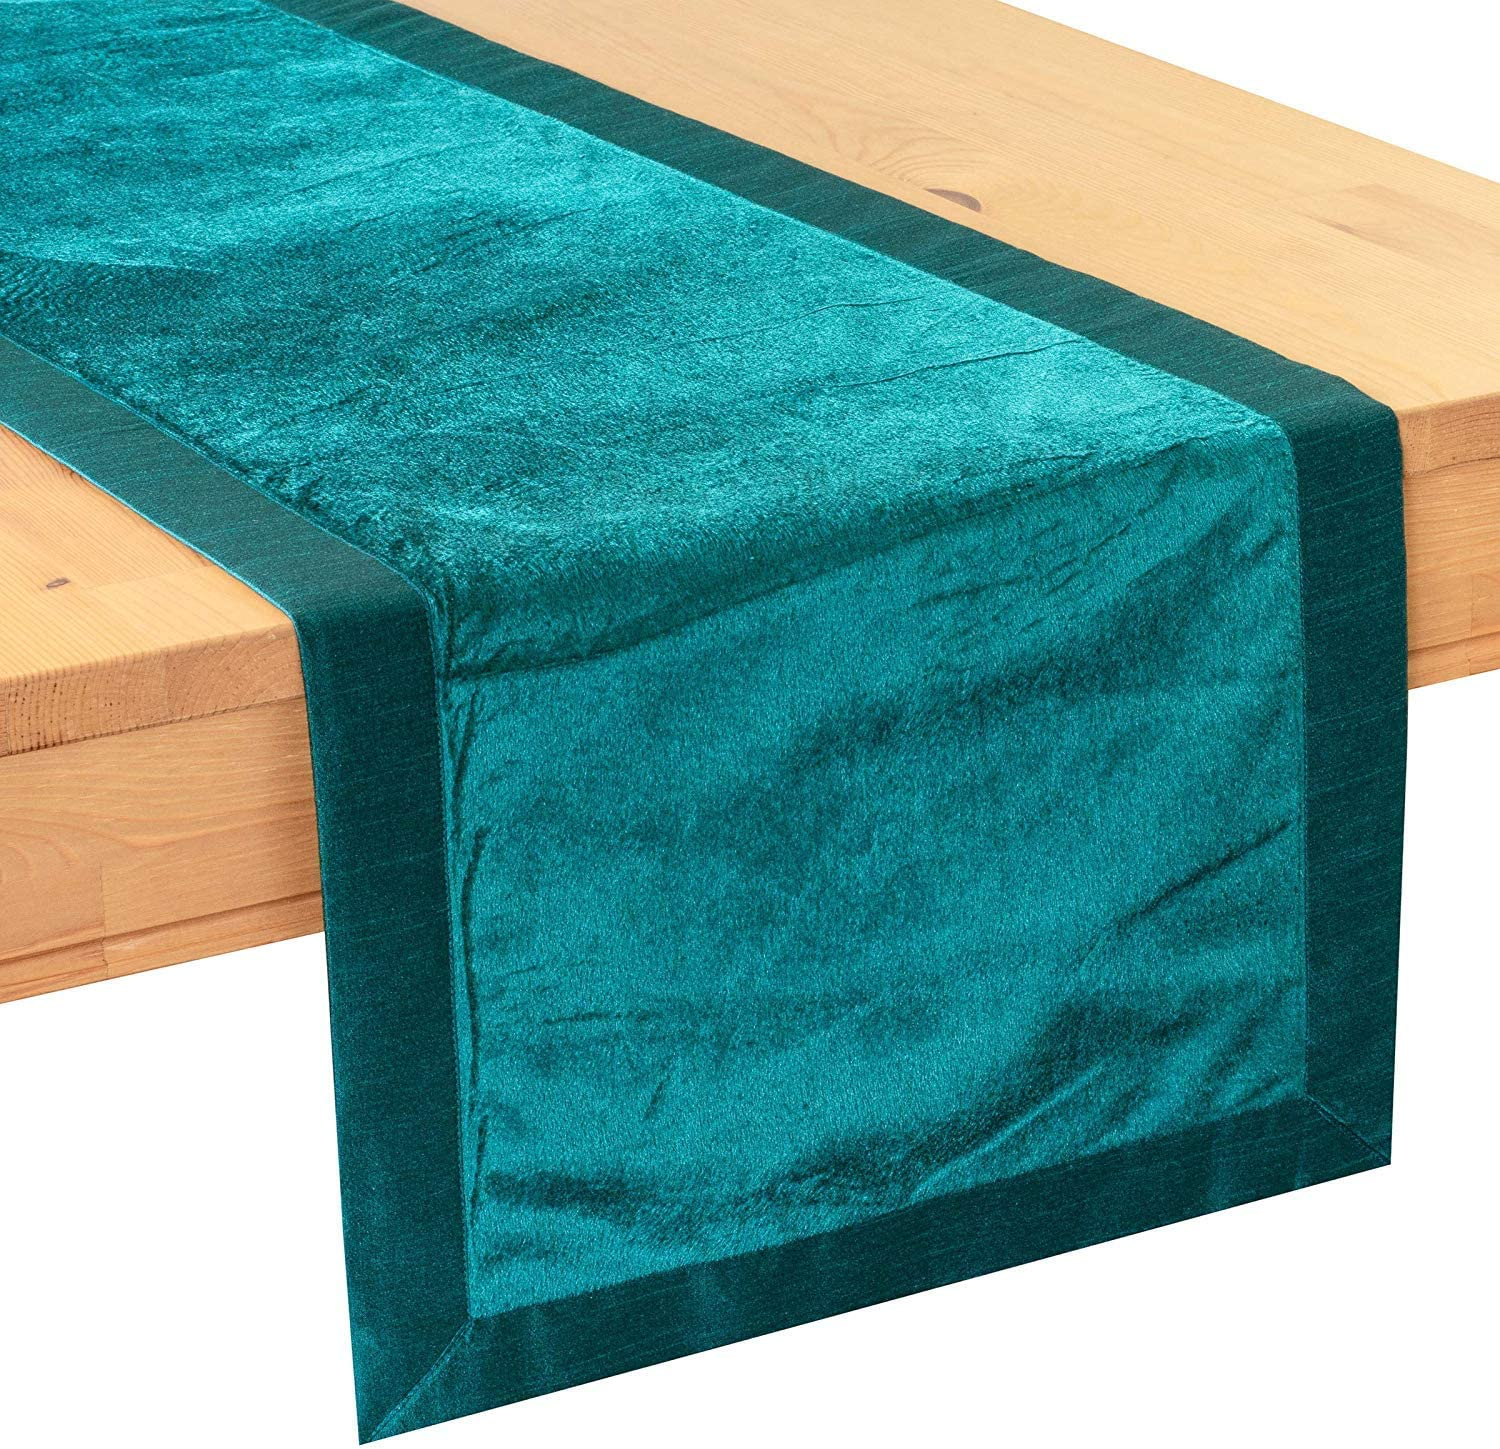 Faux Velvet, 14x36 inch, Pack of 1 Kitchen Holiday Fabric Lined No Fray Edges for Home Properly Finished The White Petals Teal Side Table Runners Wedding Party D/écor Dining Room